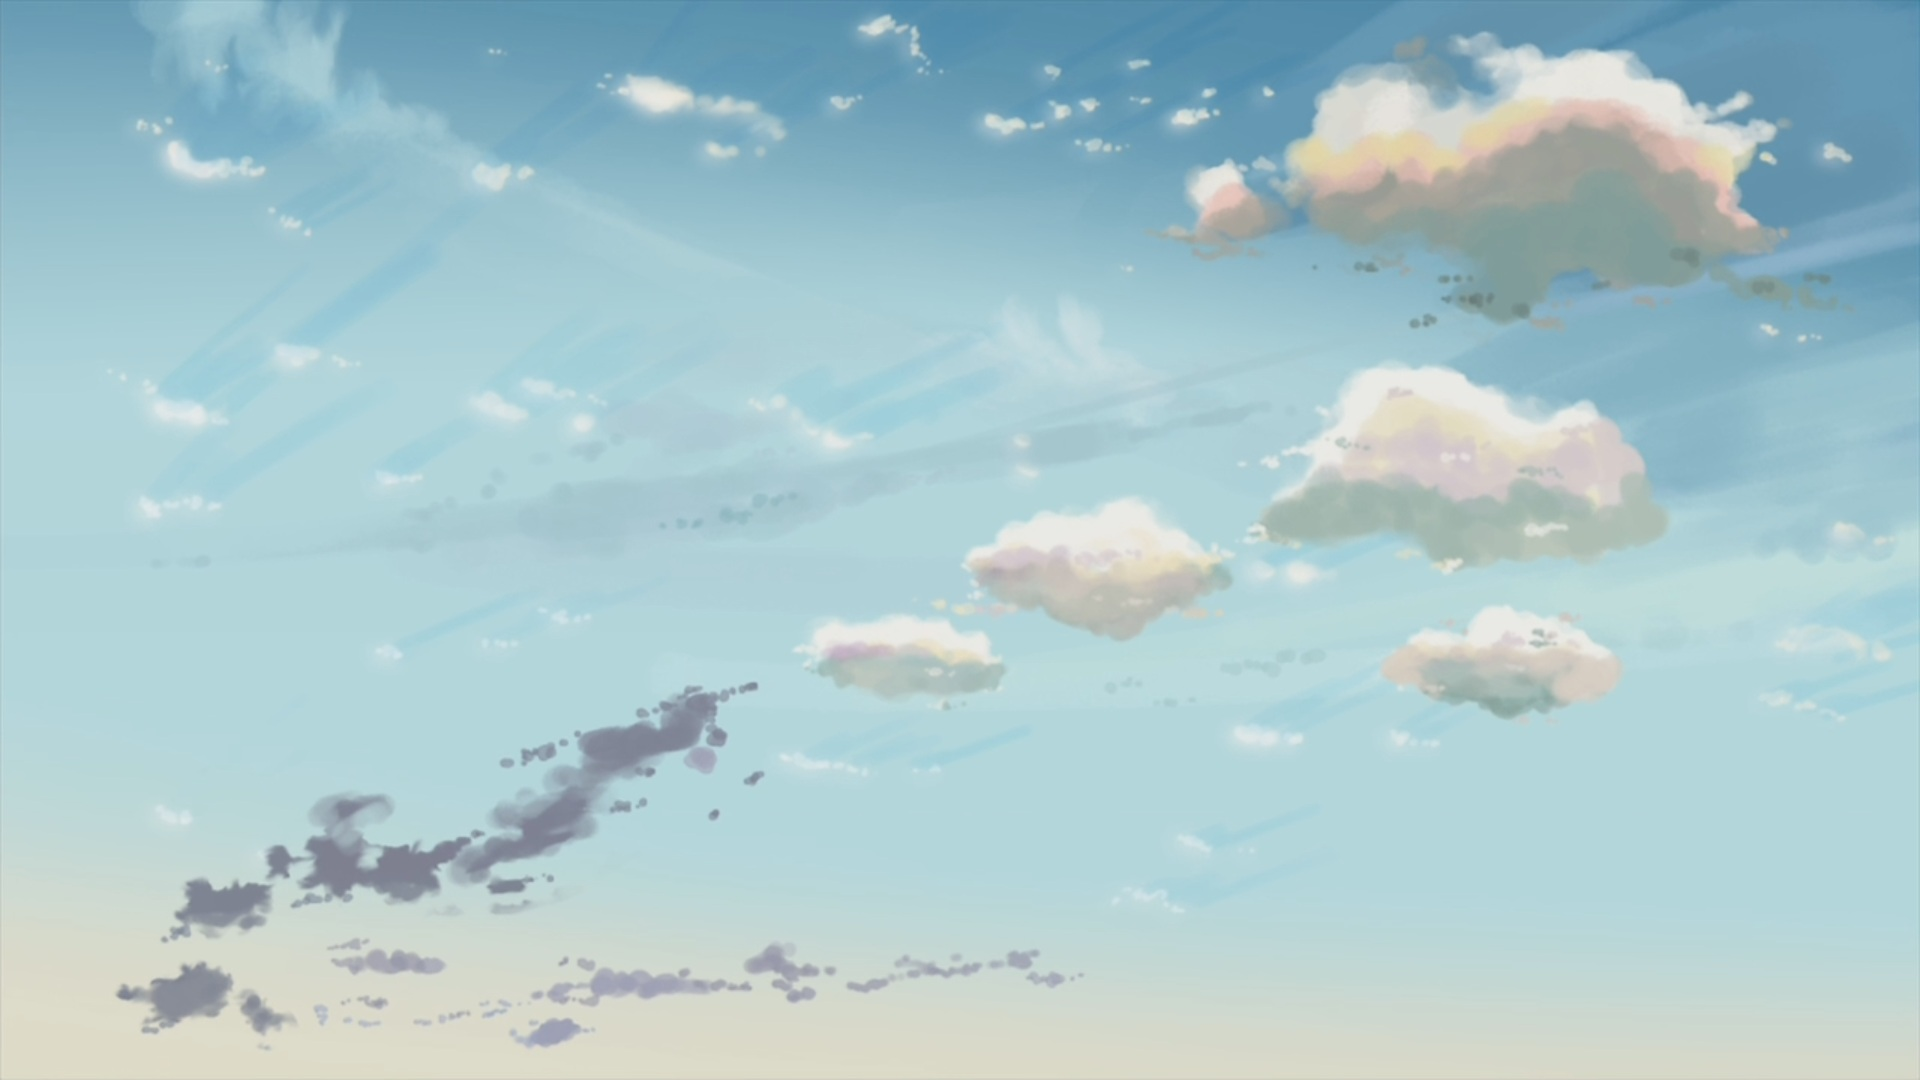 See the handpicked pastel anime wallpaper images and share with your frends and social sites. Anime Wallpaper Background Sf Wallpaper